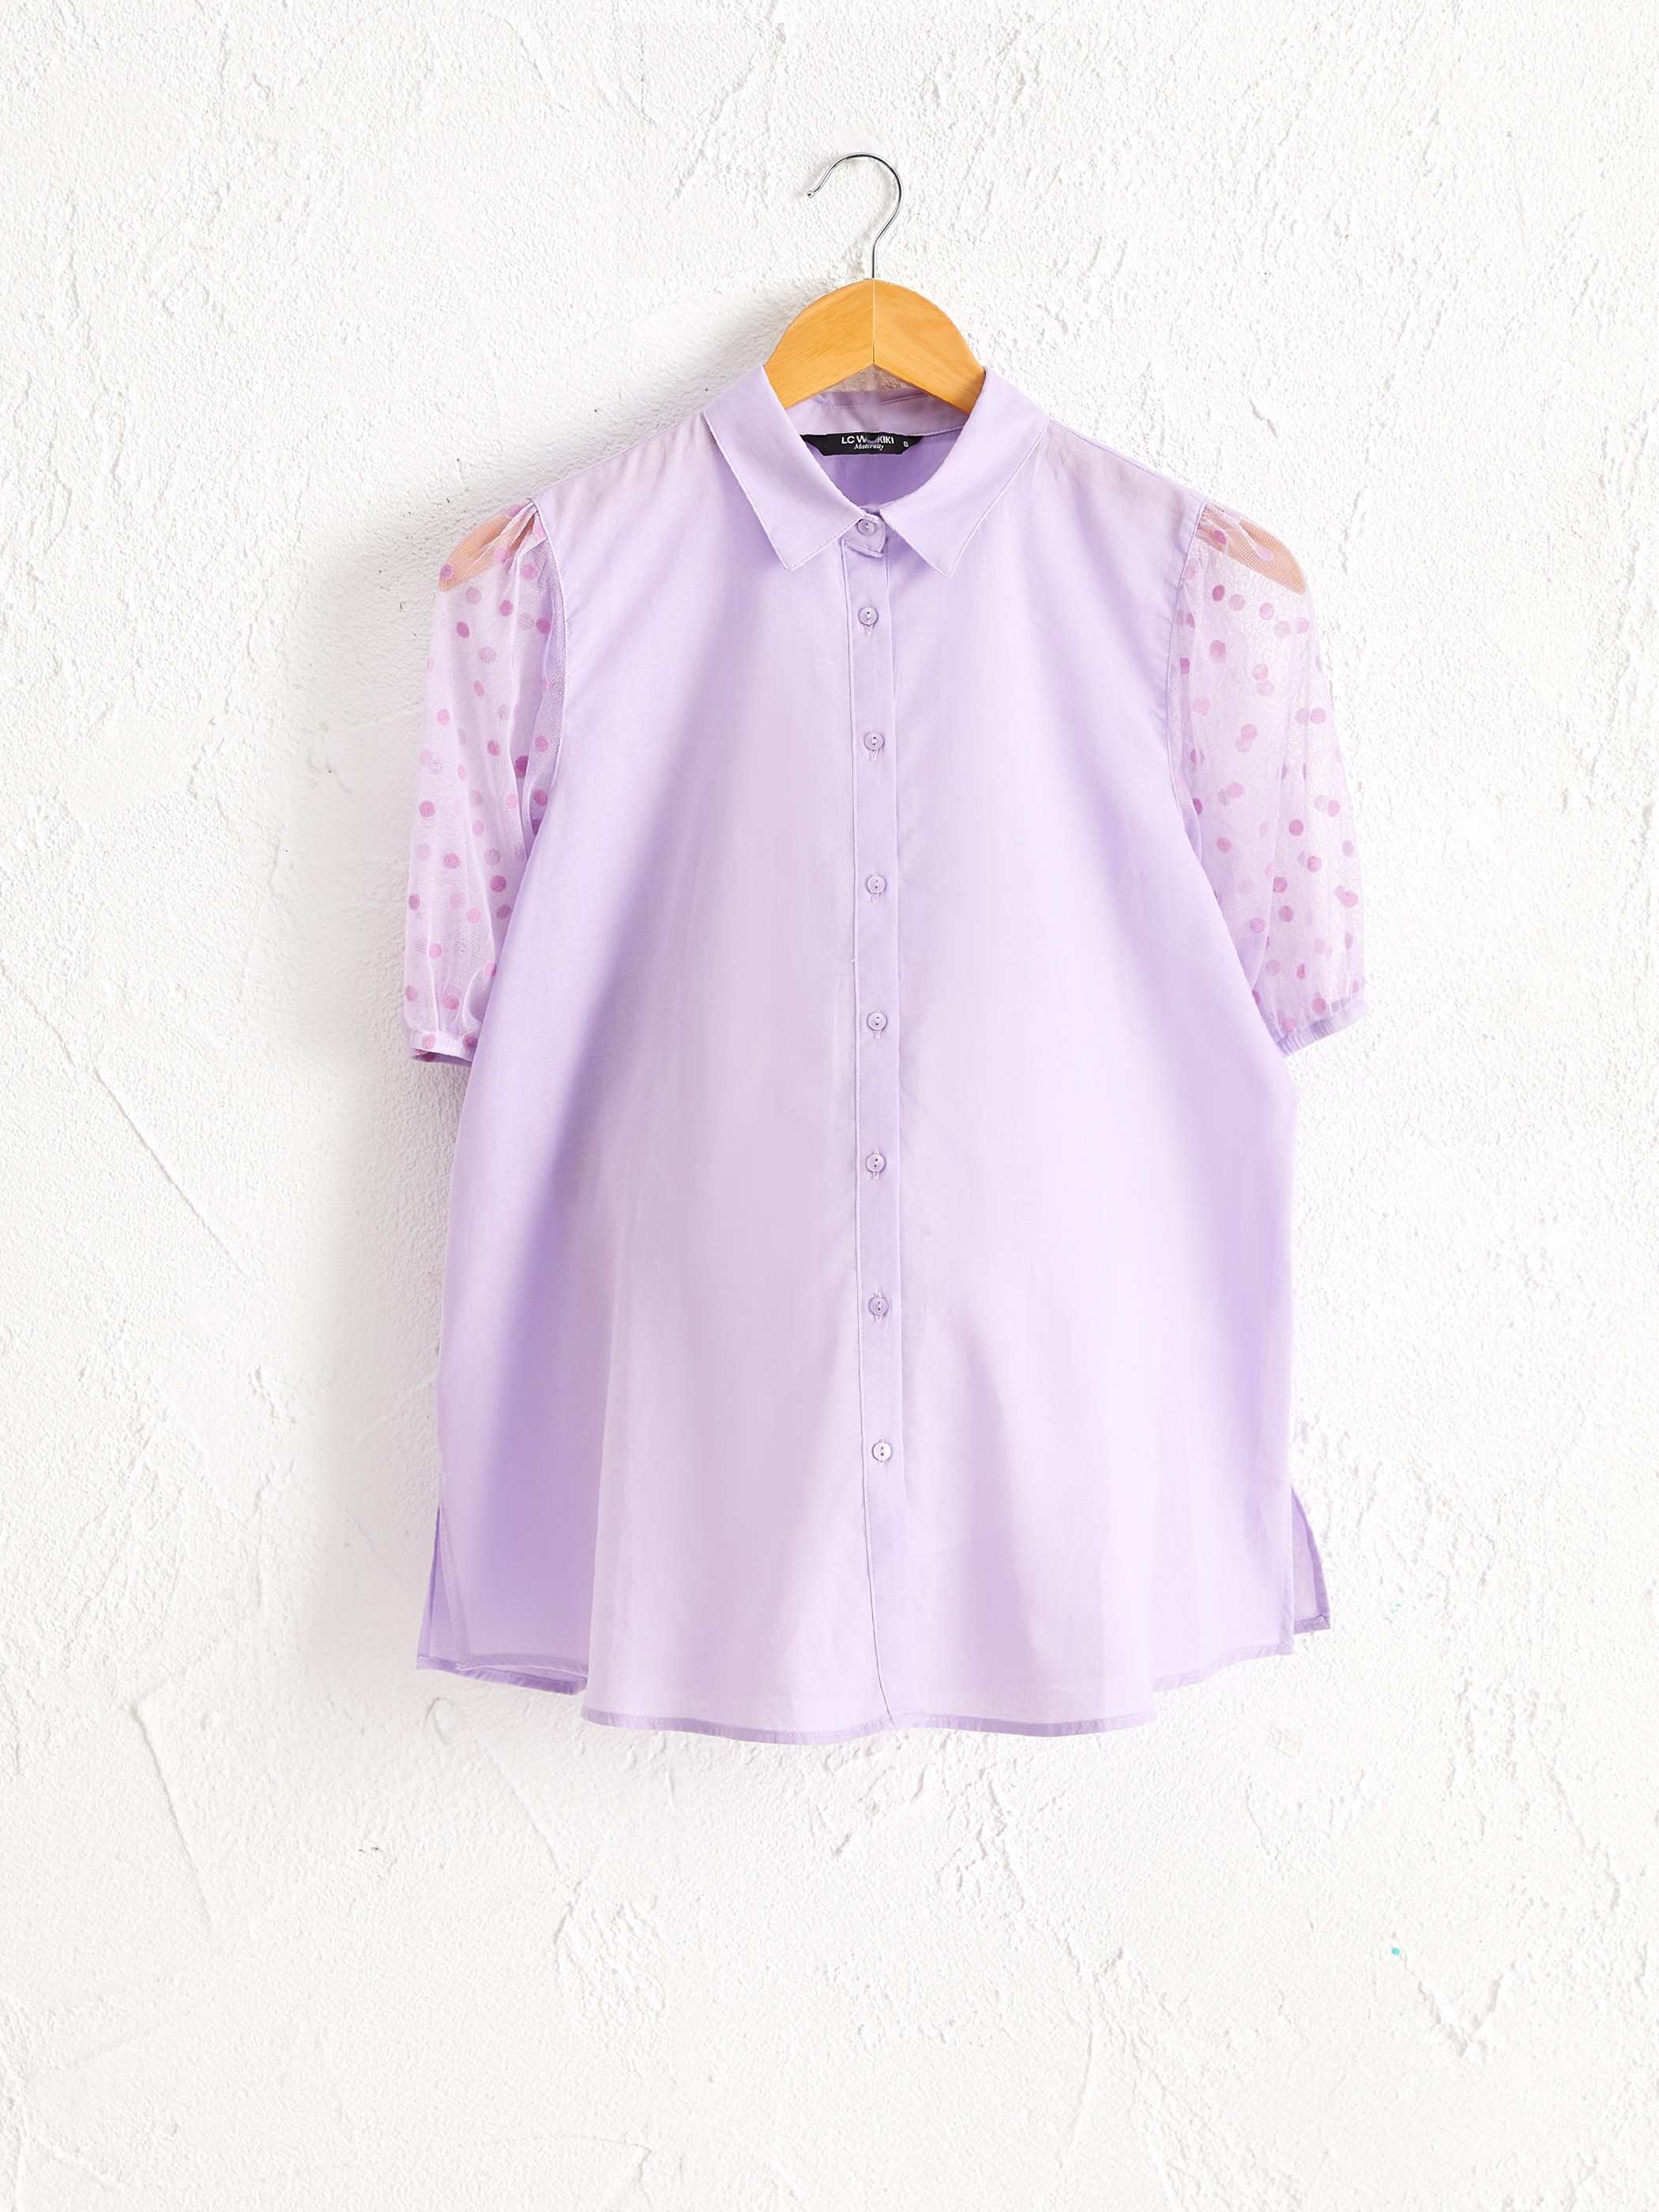 LILAC - Poplin Maternity Shirt with Sleeves Tulle Detail - 0SA106Z8